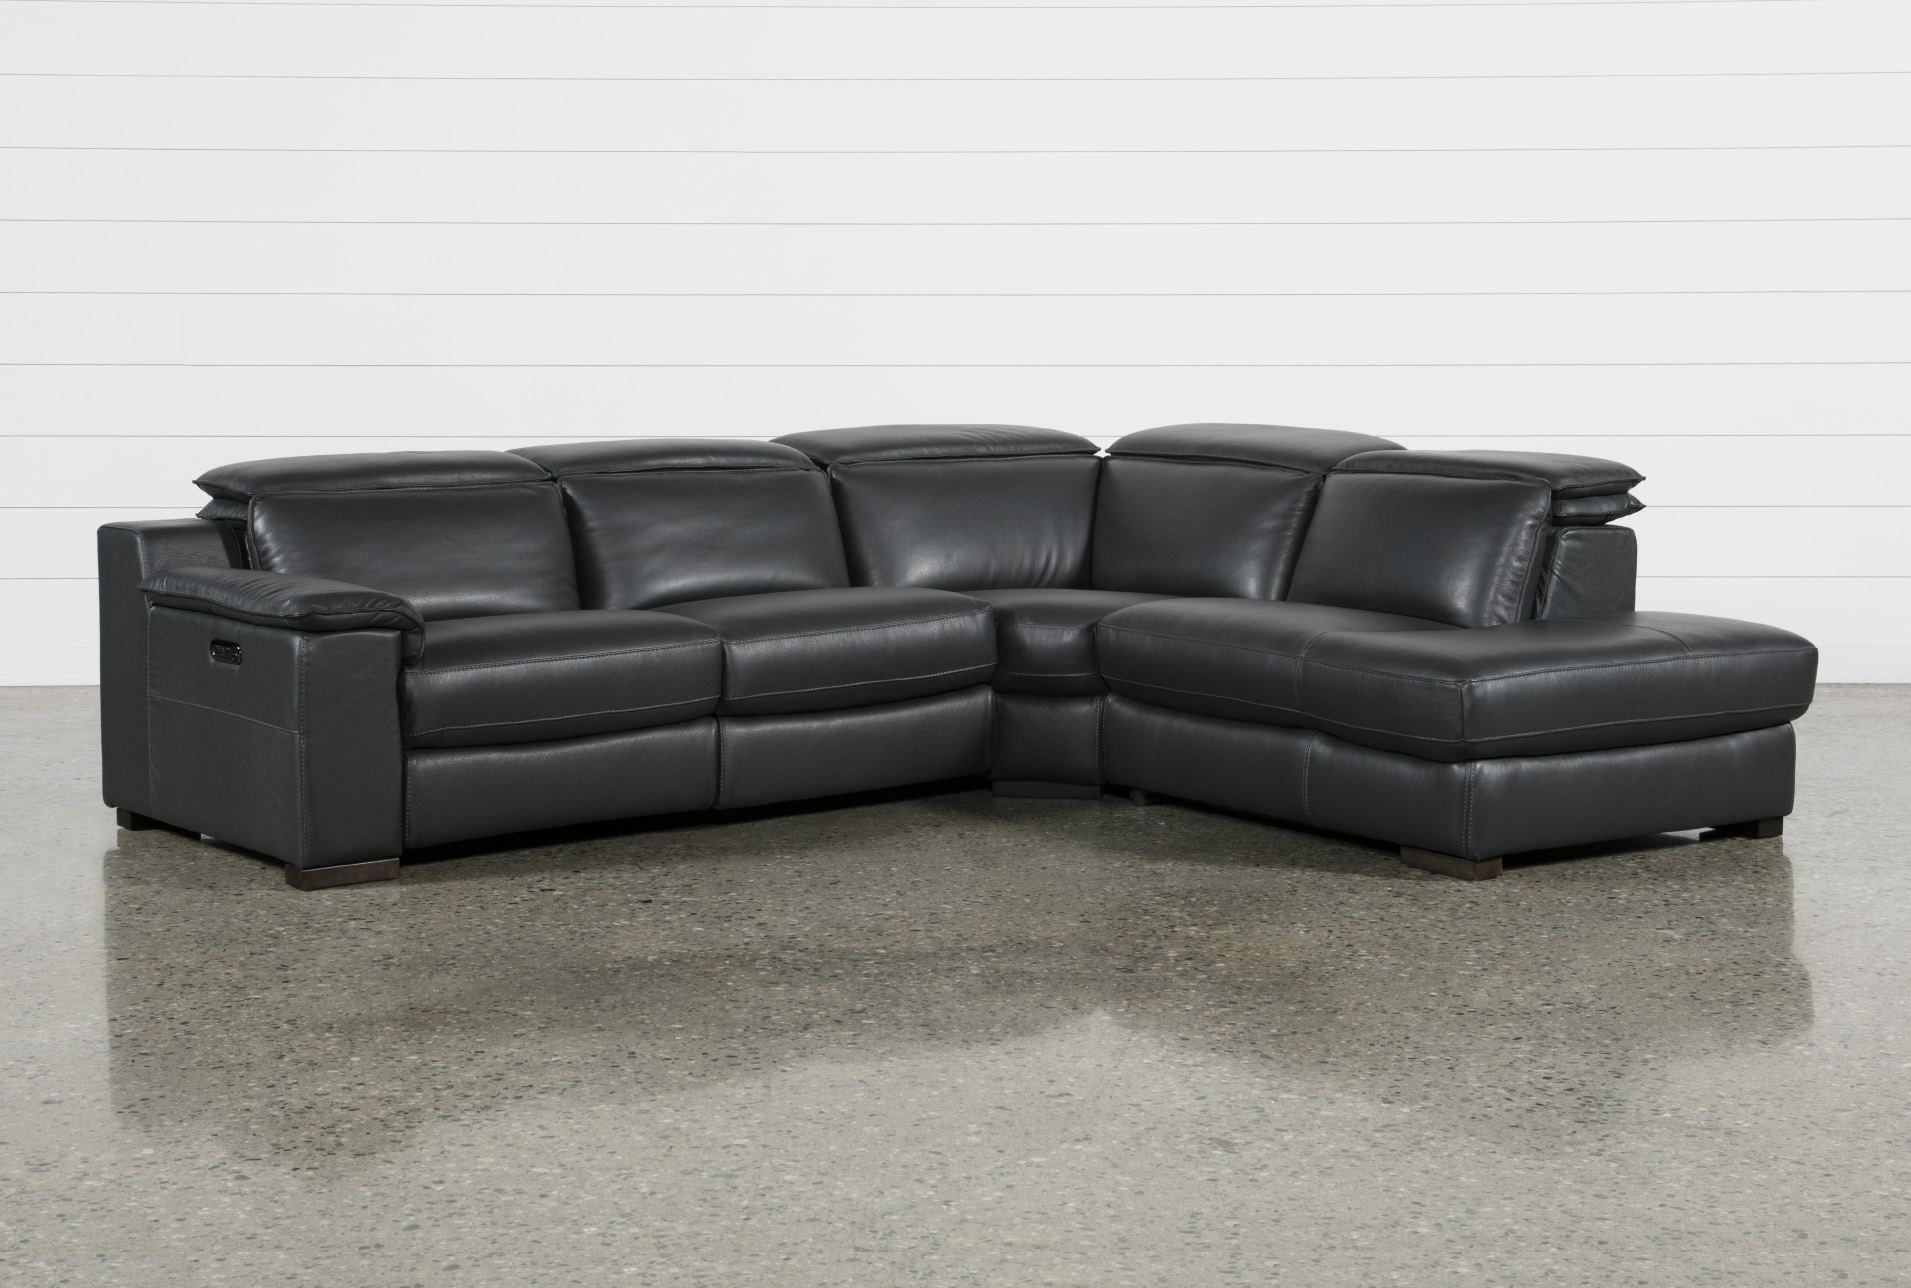 Modern sectional sofa Red Hana Slate Leather Piece Power Reclining Sectional With Right Facing Chaise Living Spaces Contemporary Modern Sectionals Sectional Sofas Living Spaces